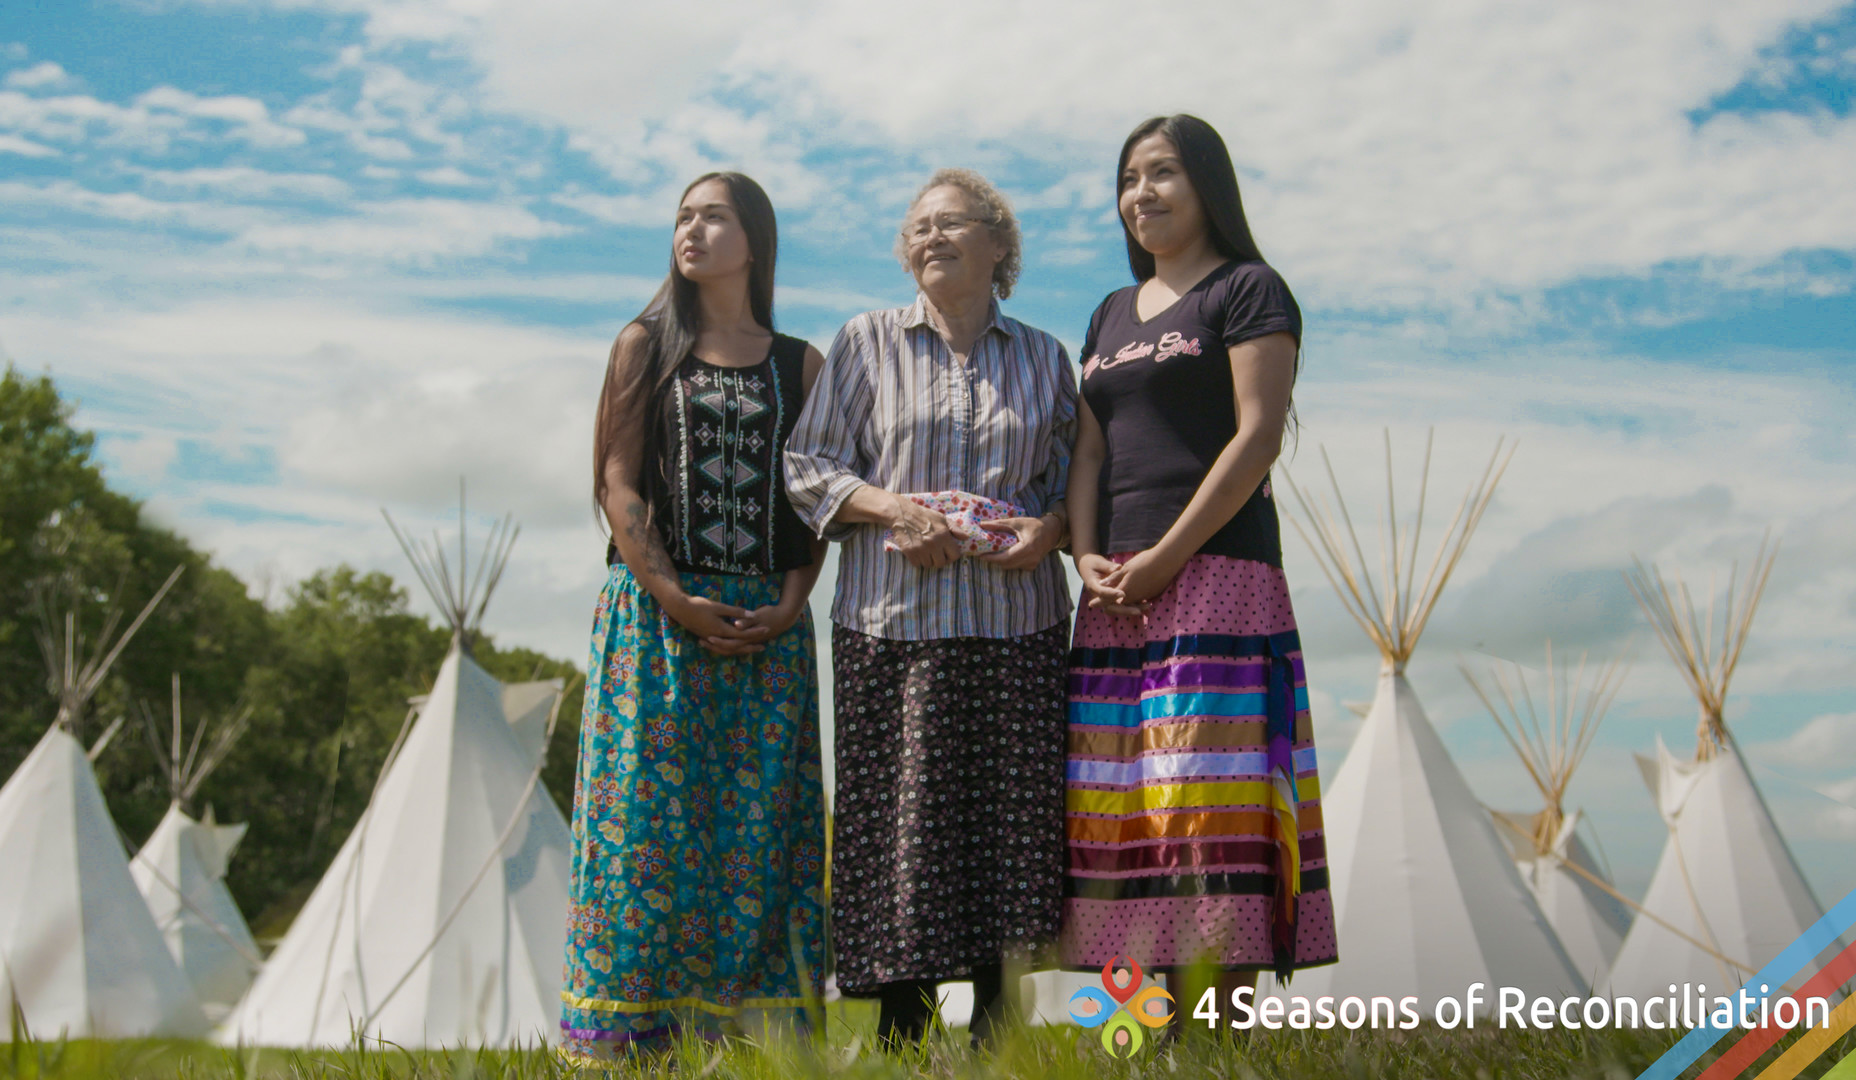 Âsônamâtowin - A Sharing of Indigenous Knowledge - Directors: Florence Allen, Willie Ermine, Roland Kaye, Gilbert Kewistep, Mary Lee, William Ratfoot, Margaret Reynolds26 m, Documentary Short, CanadaUntil the 1950's Canada's Indian Act made it illegal to practise Indigenous spiritual ceremonies. Witness the return to spiritual traditions and the Elders who are sharing what was once hidden knowledge. Filmed in the fields and forests of First Nations lands across western Canada, 'Âsônamâtowin a Sharing of Indigenous Knowledge' was envisioned and directed by the Elder's Circle of the First Nations University of Canada.